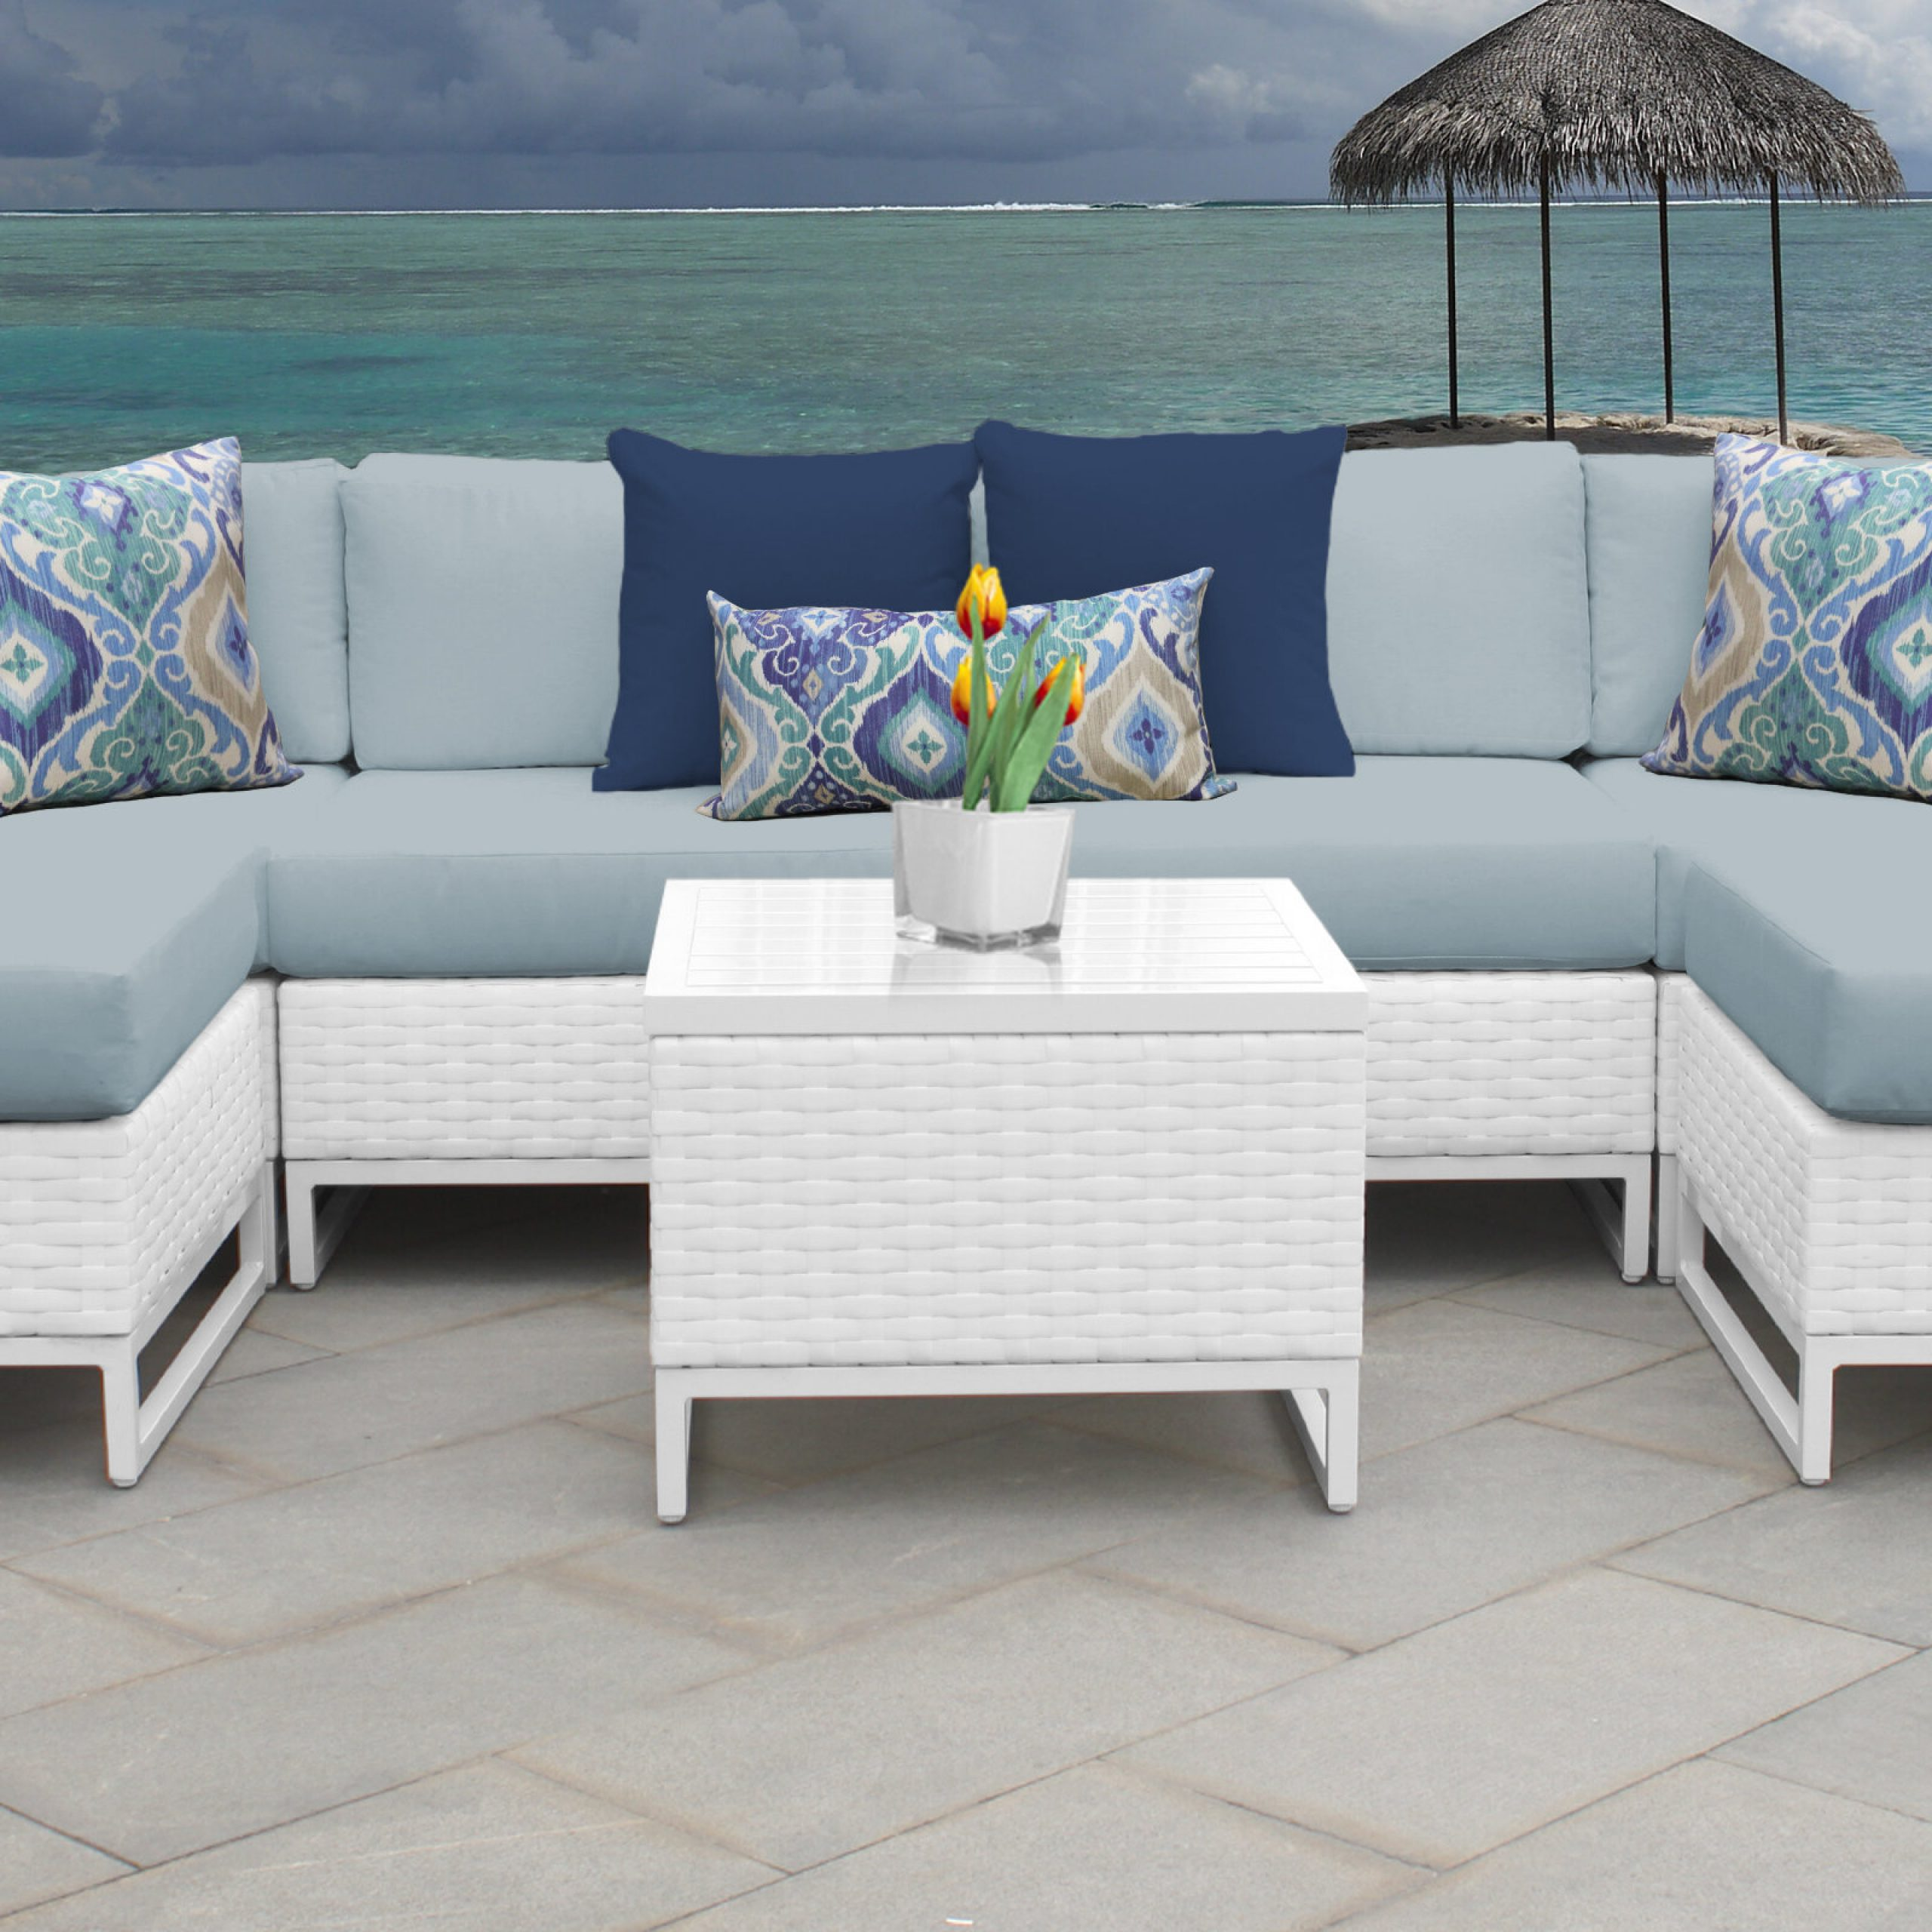 Famous Menifee Patio Sofas With Cushions With Regard To Menifee 7 Piece Sectional Seating Group With Cushions (View 5 of 25)